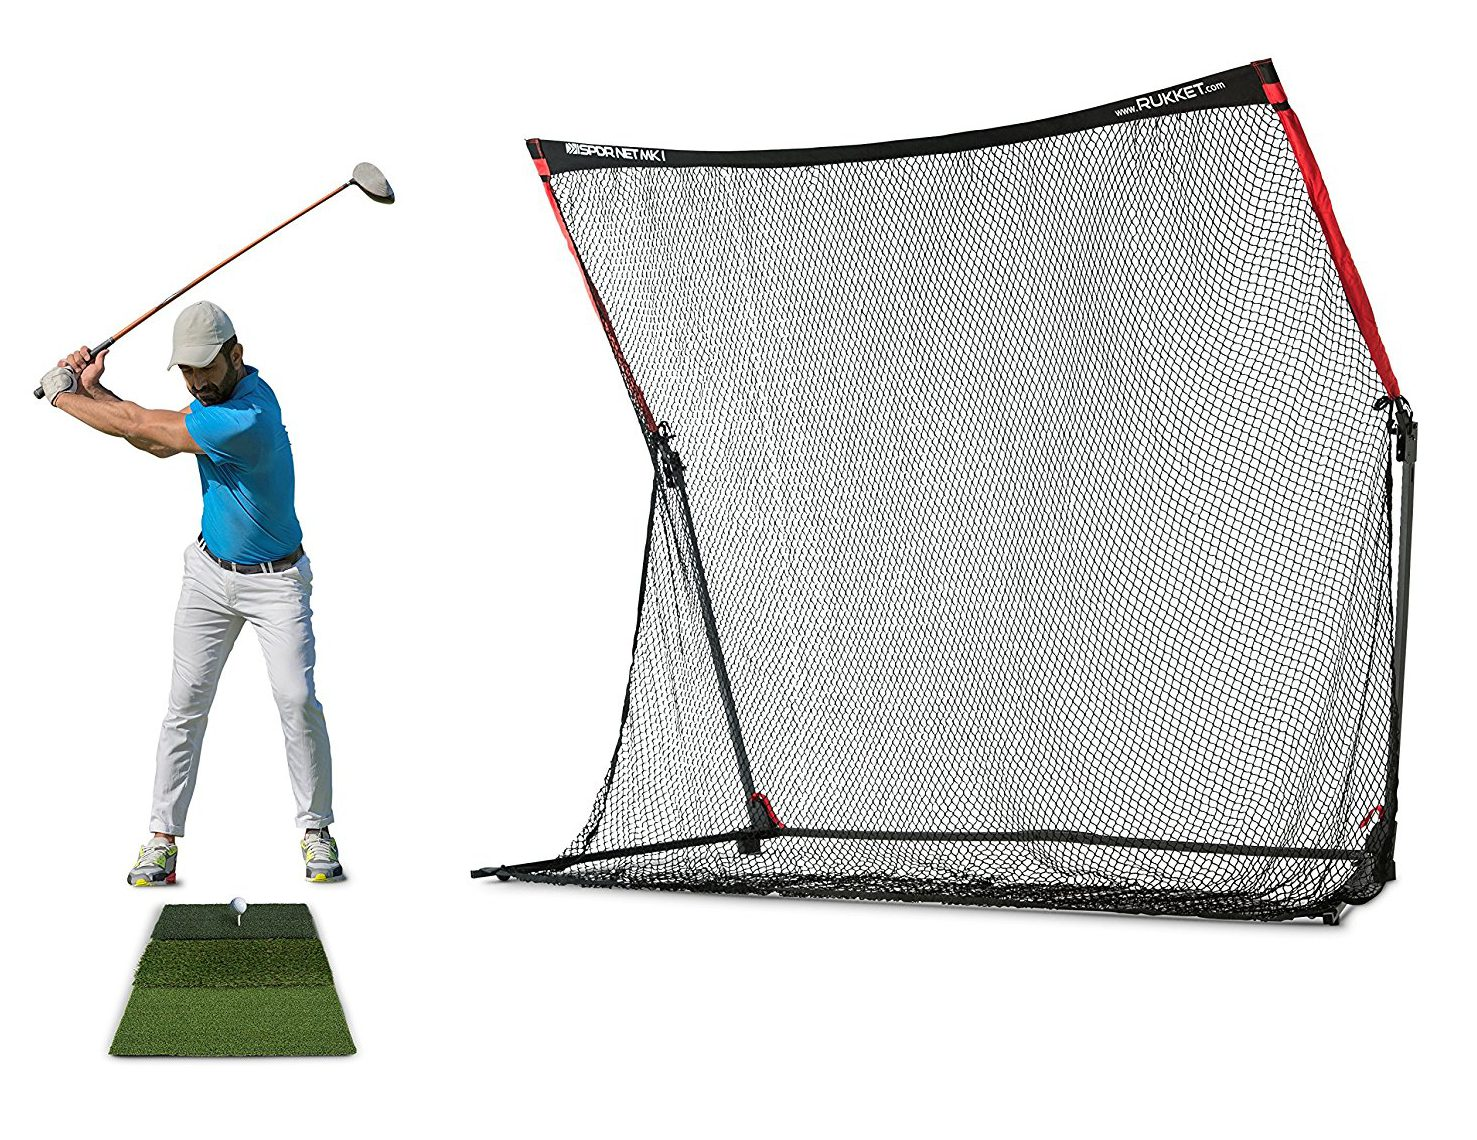 rukket-backyard-golf-net-with-wings - Best Backyard Gear